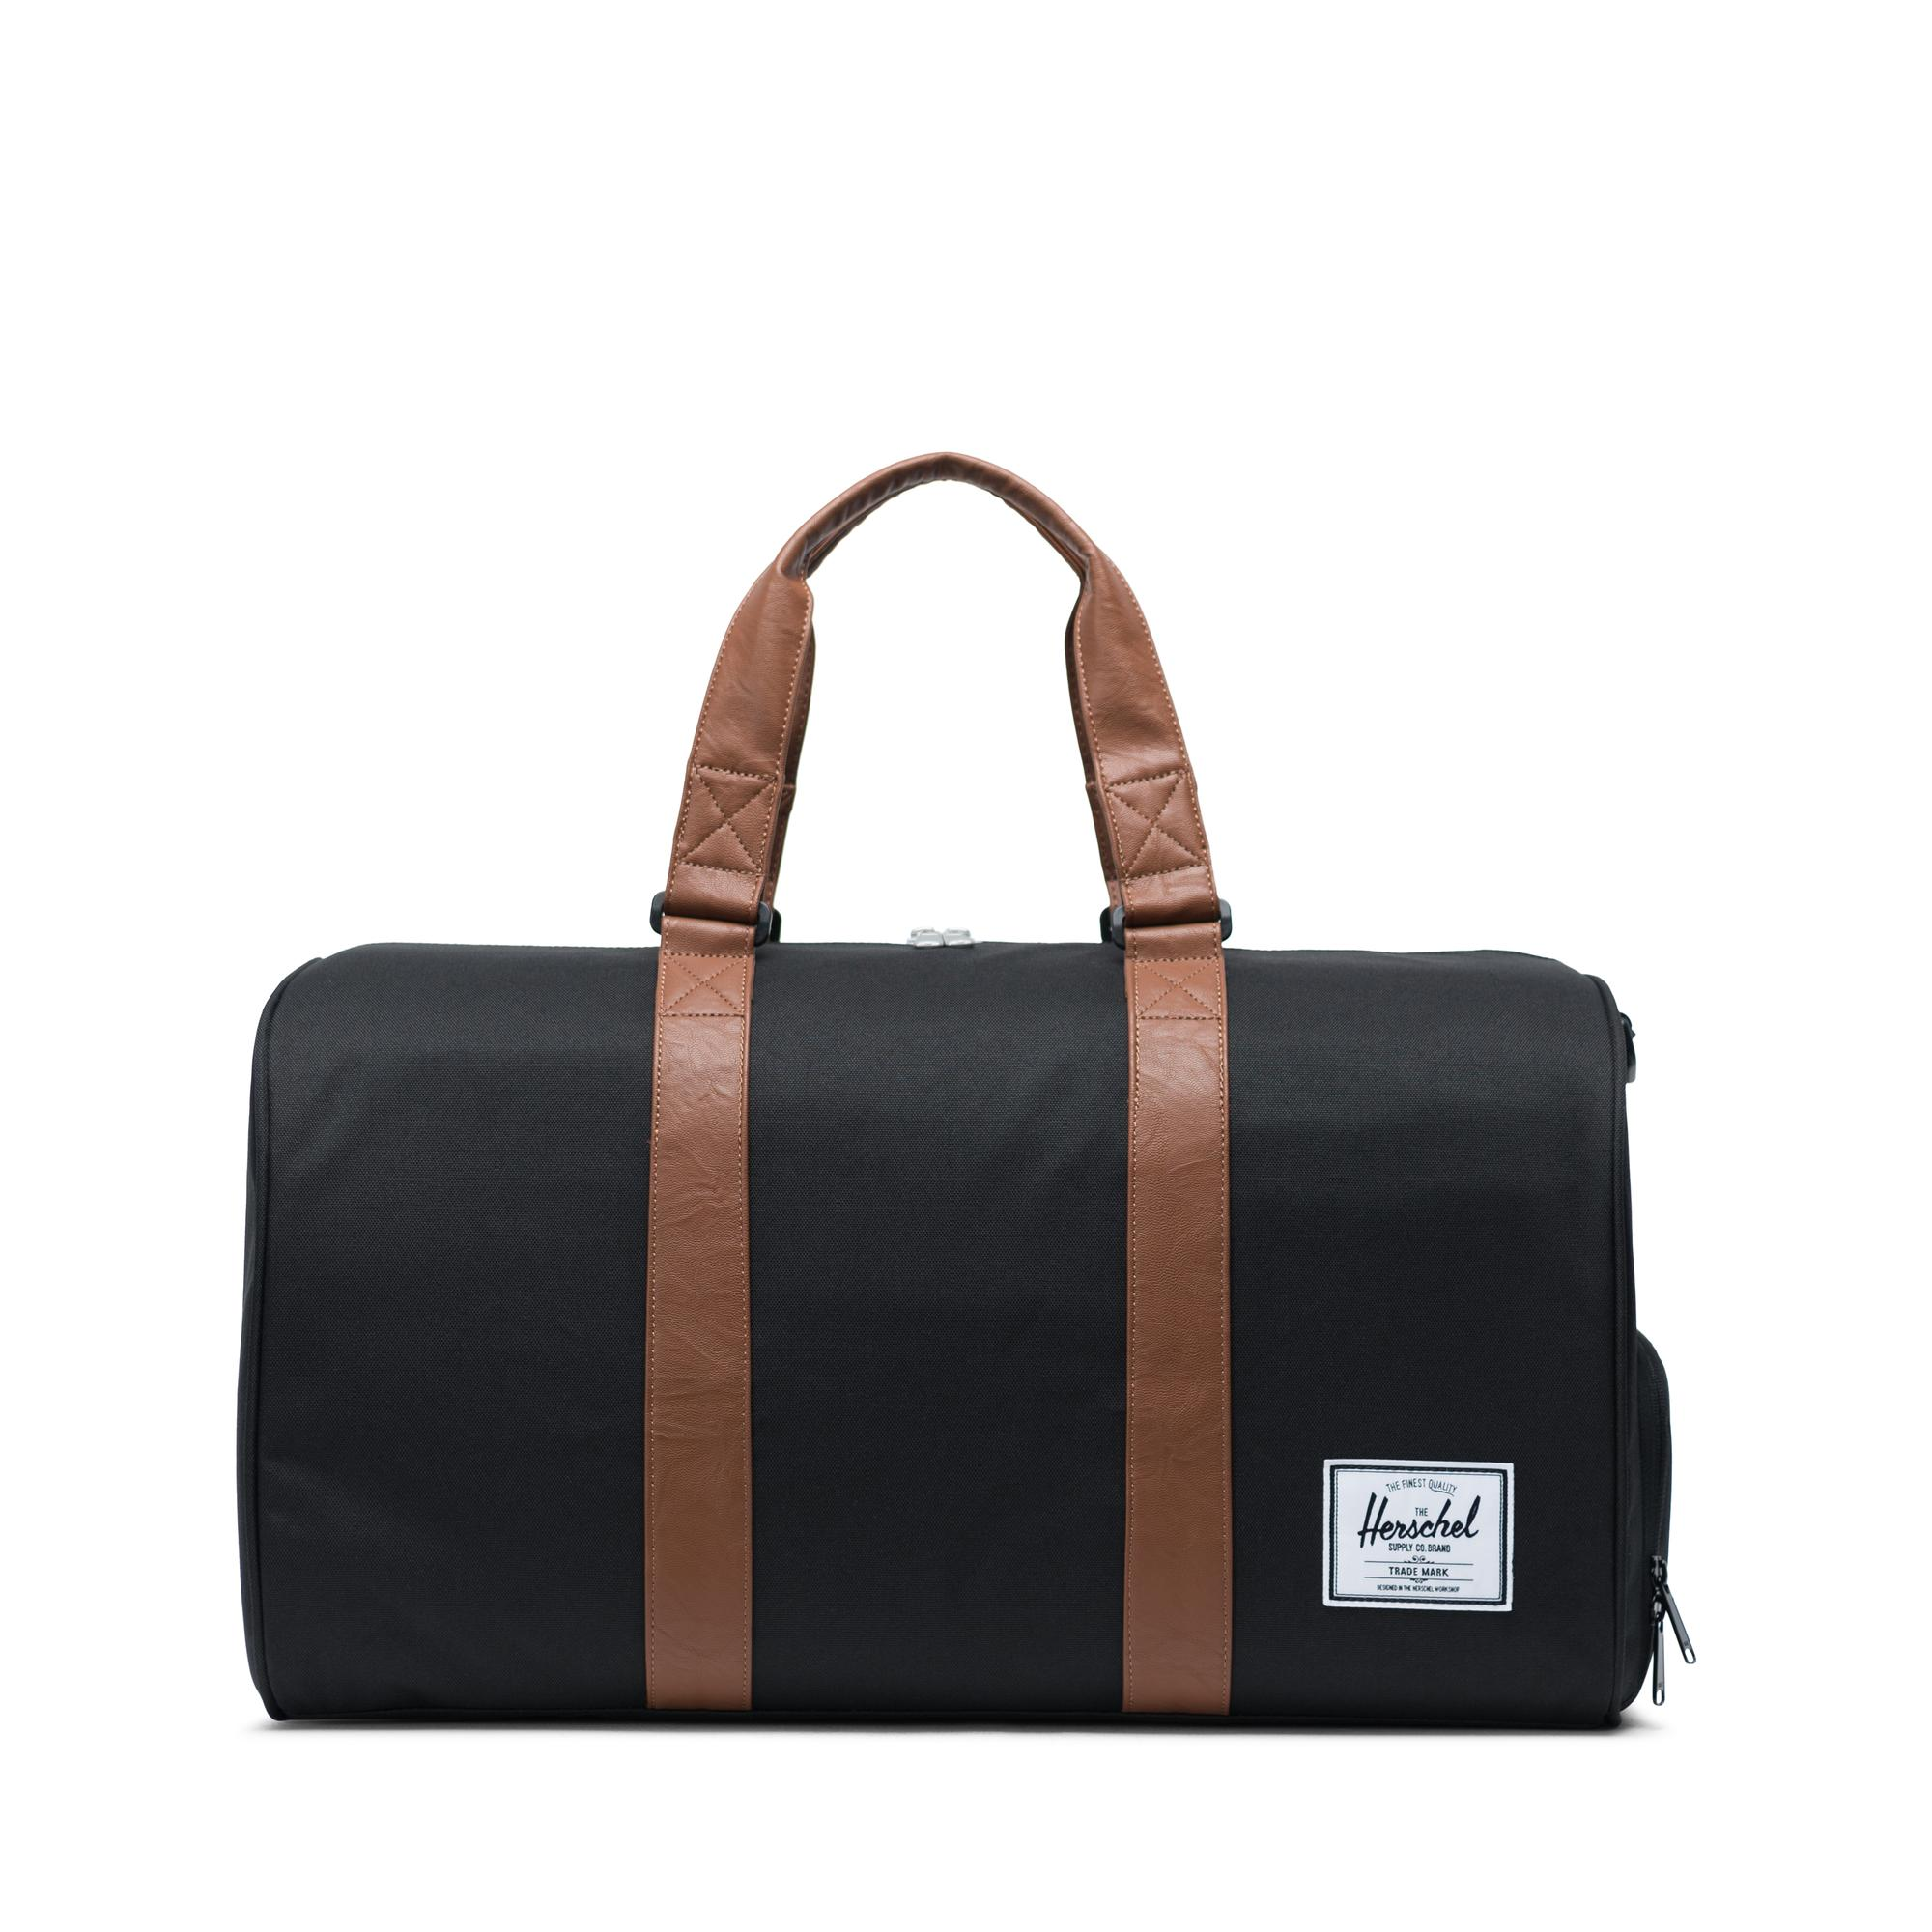 17b73bb623385 Novel Duffle